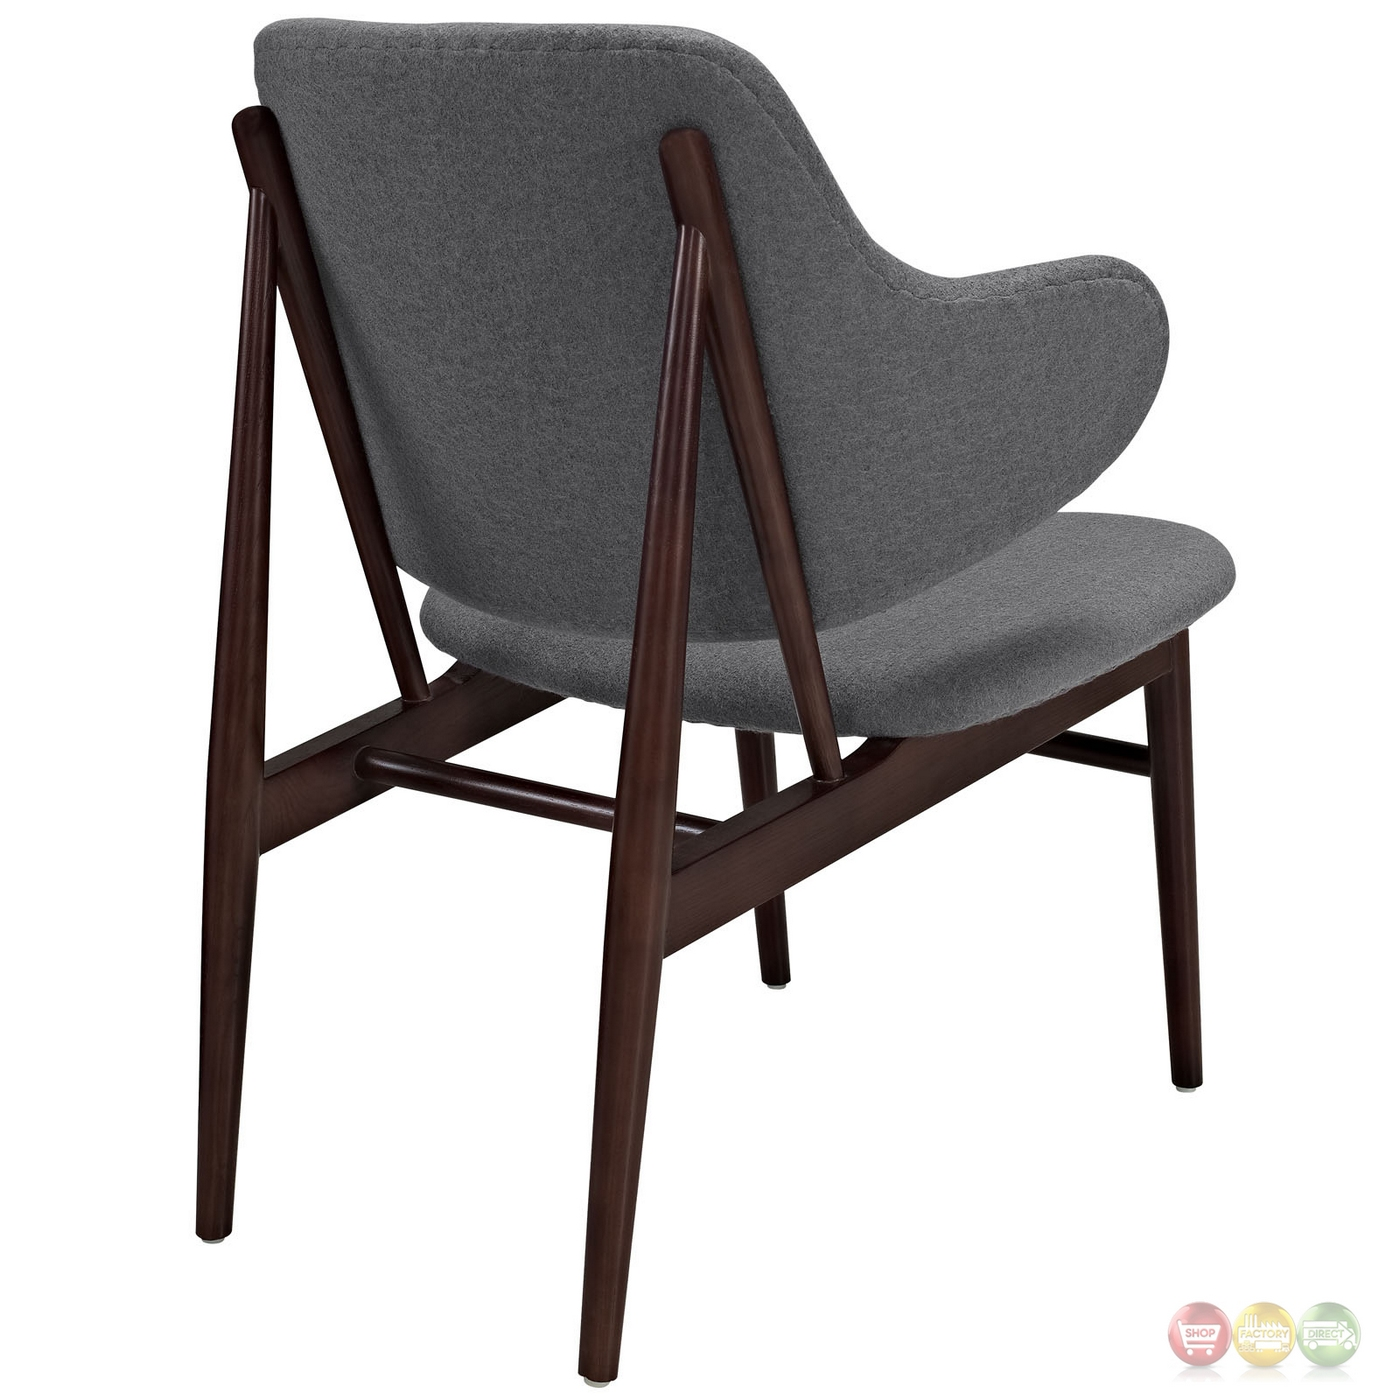 Cherish modern dark cherry wood lounge chair w upholstered for Modern wood chair